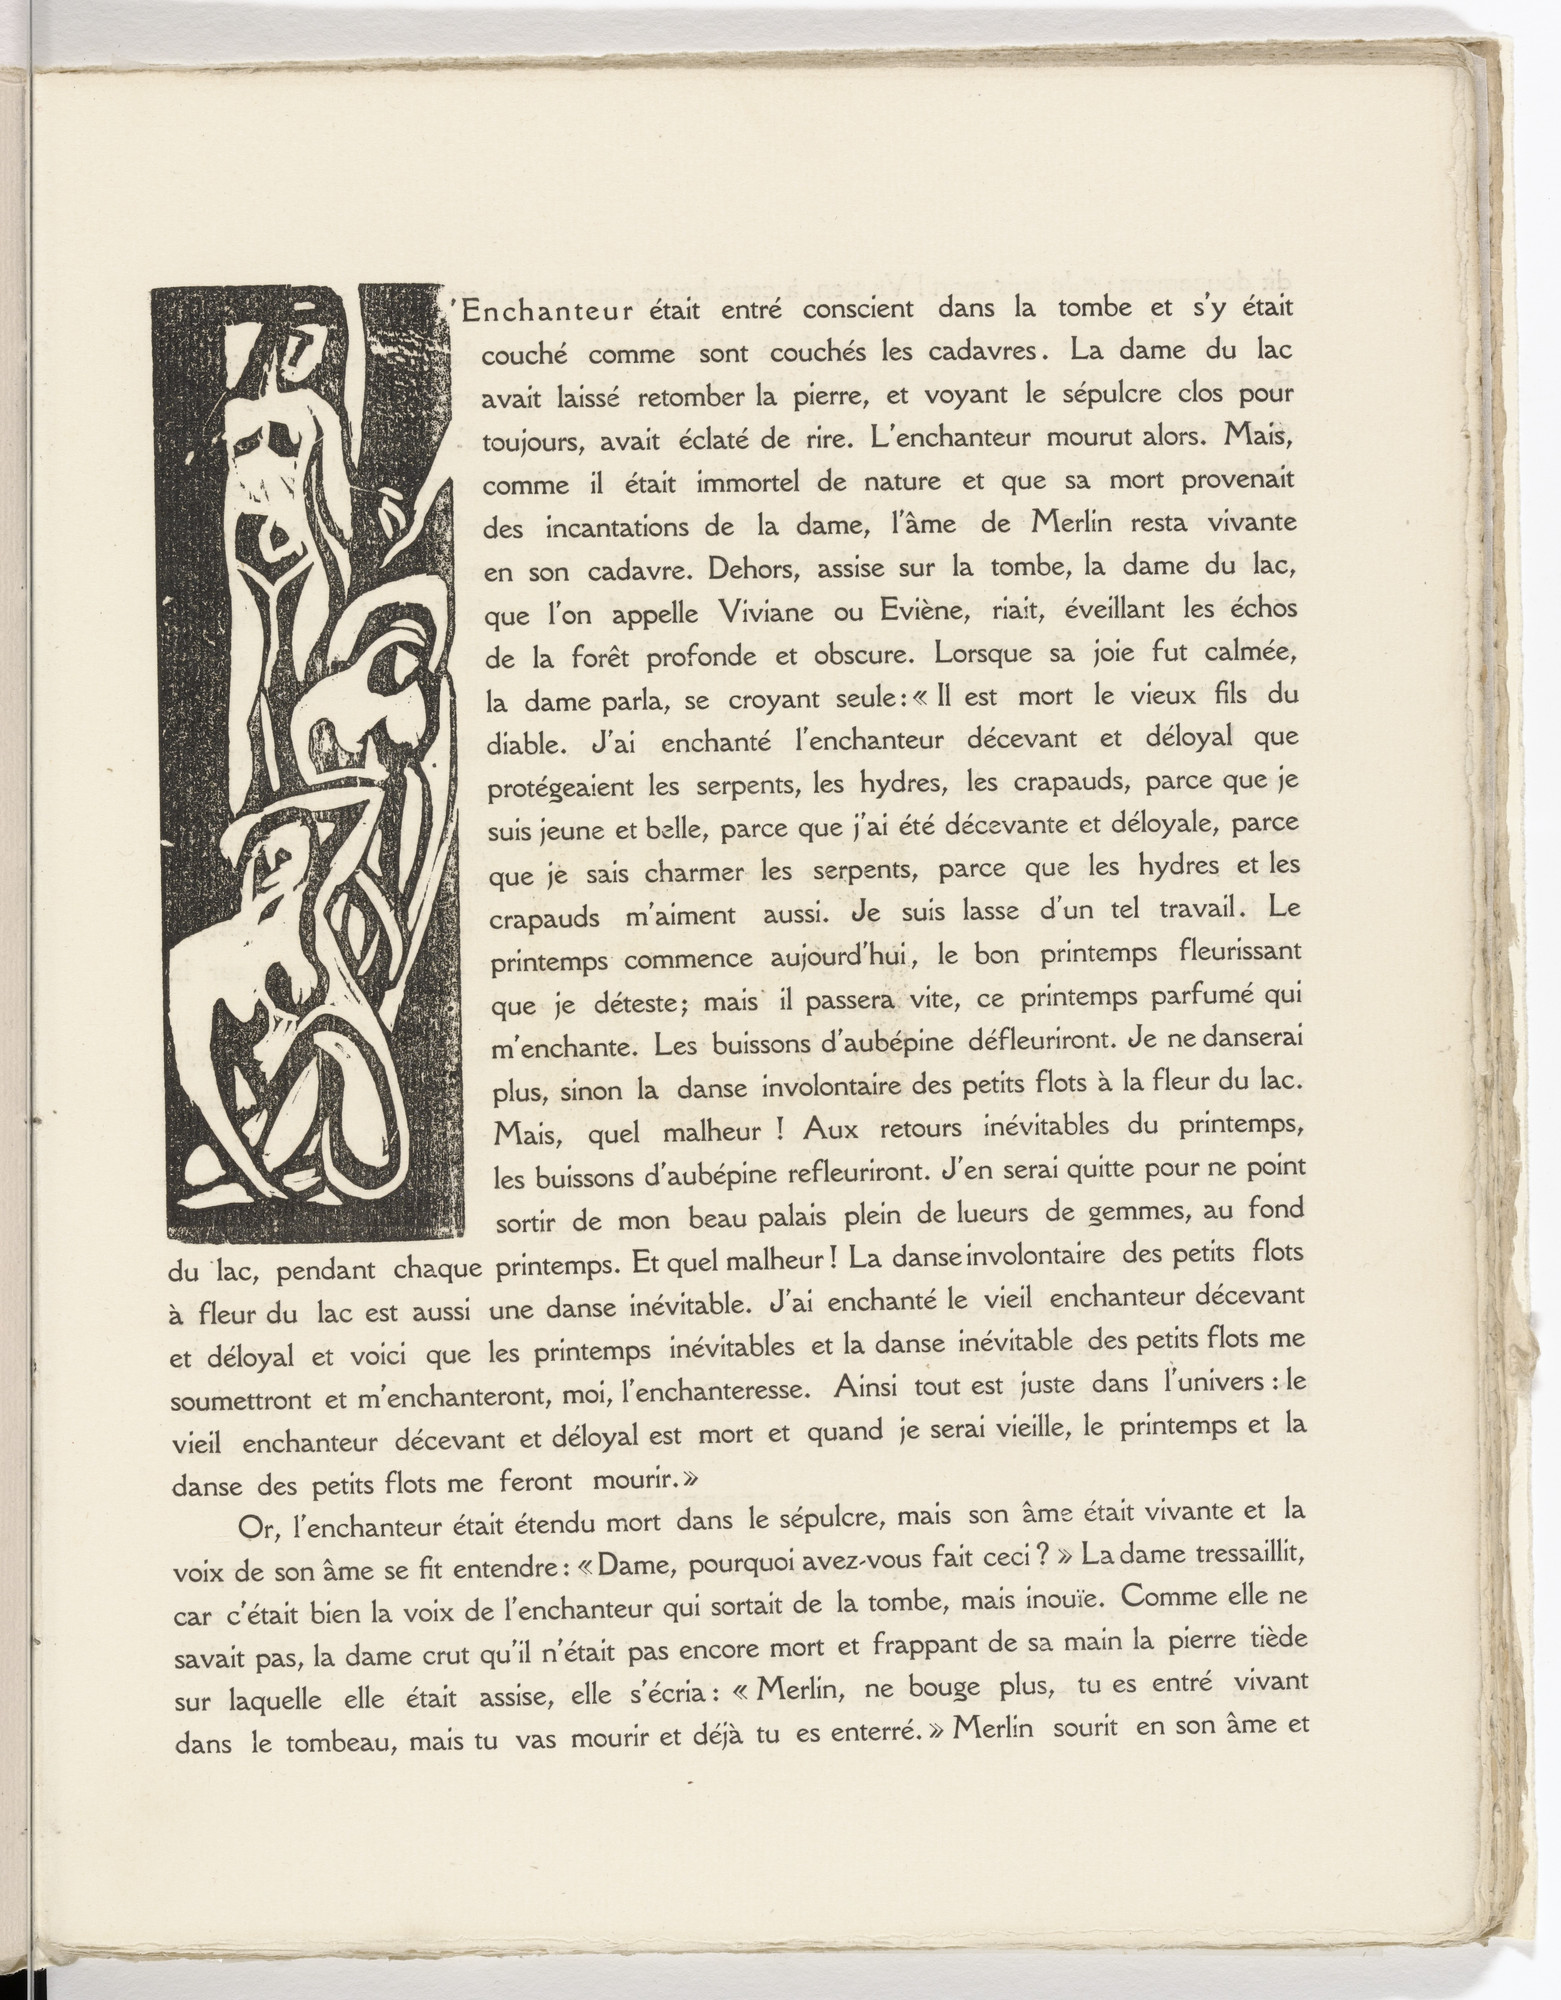 André Derain. Pictorial initial L (folio 6) from L'Enchanteur pourrissant. 1909